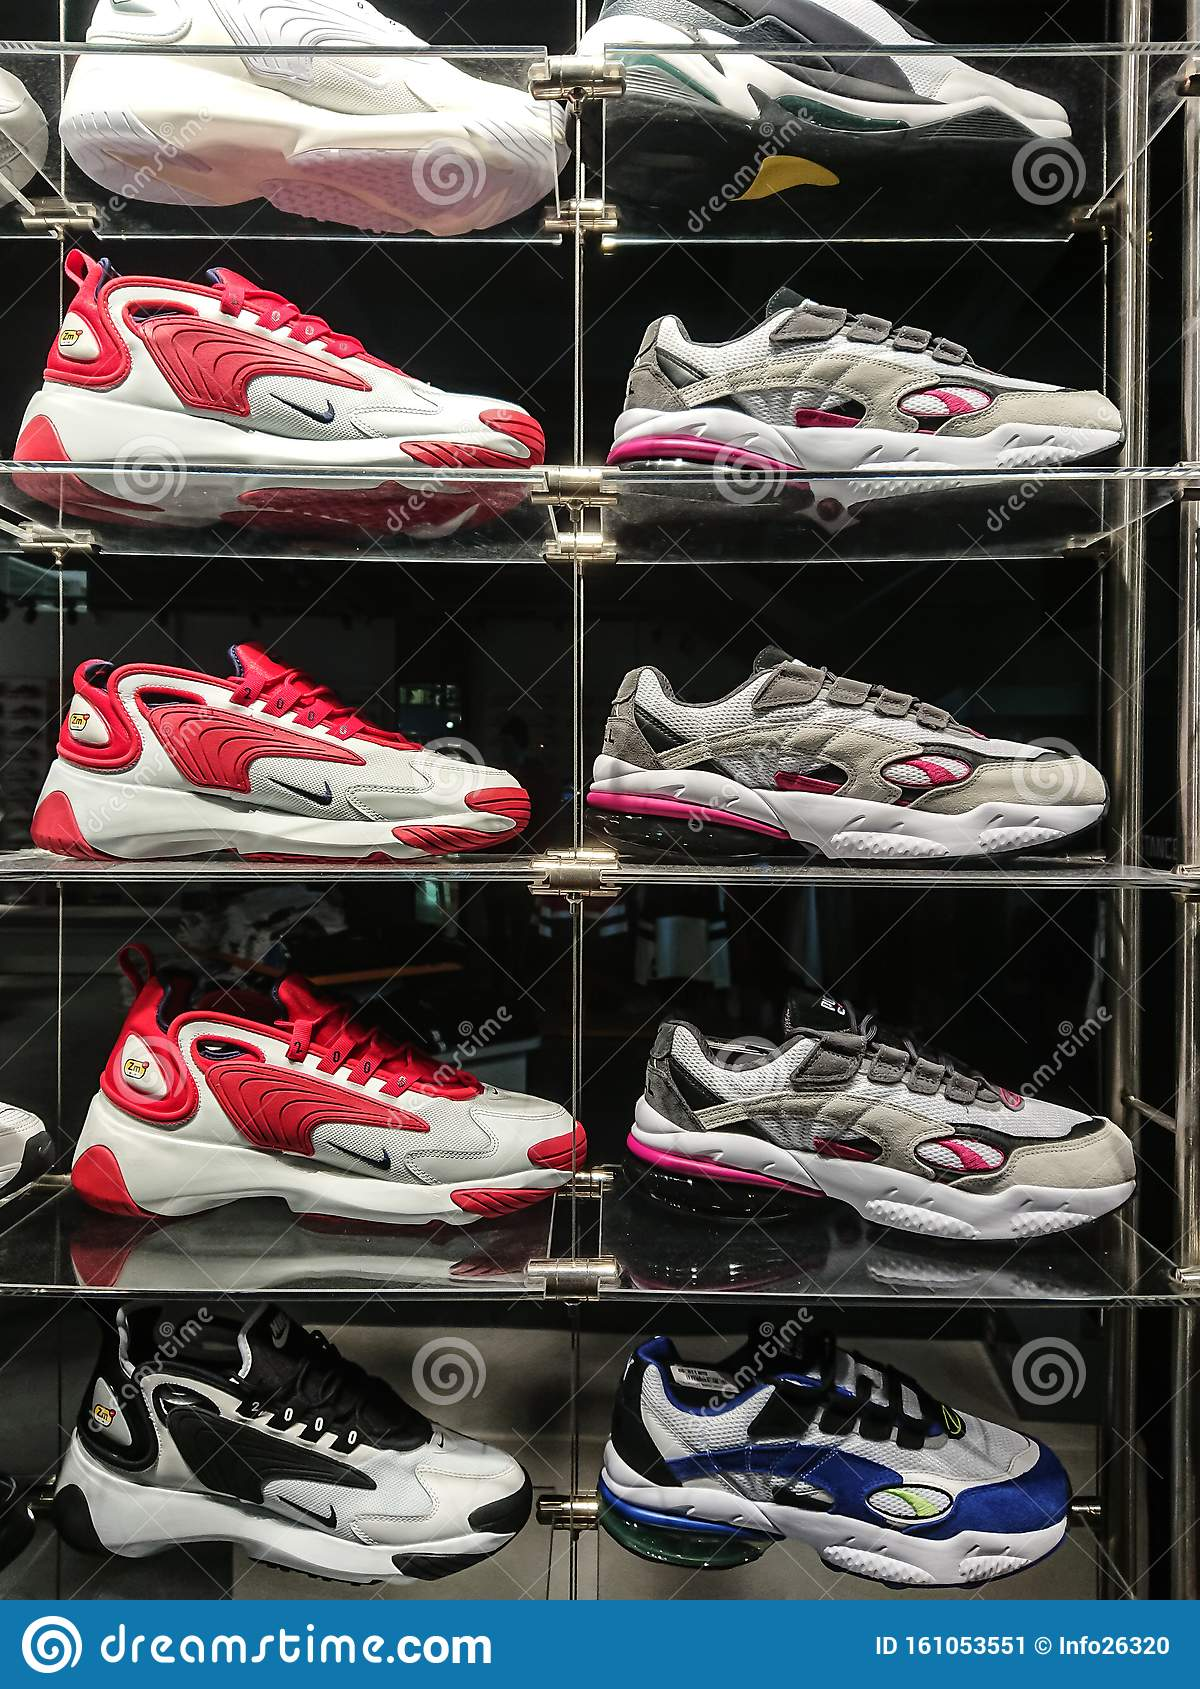 Nike Sport Shoes Displayed For Sale